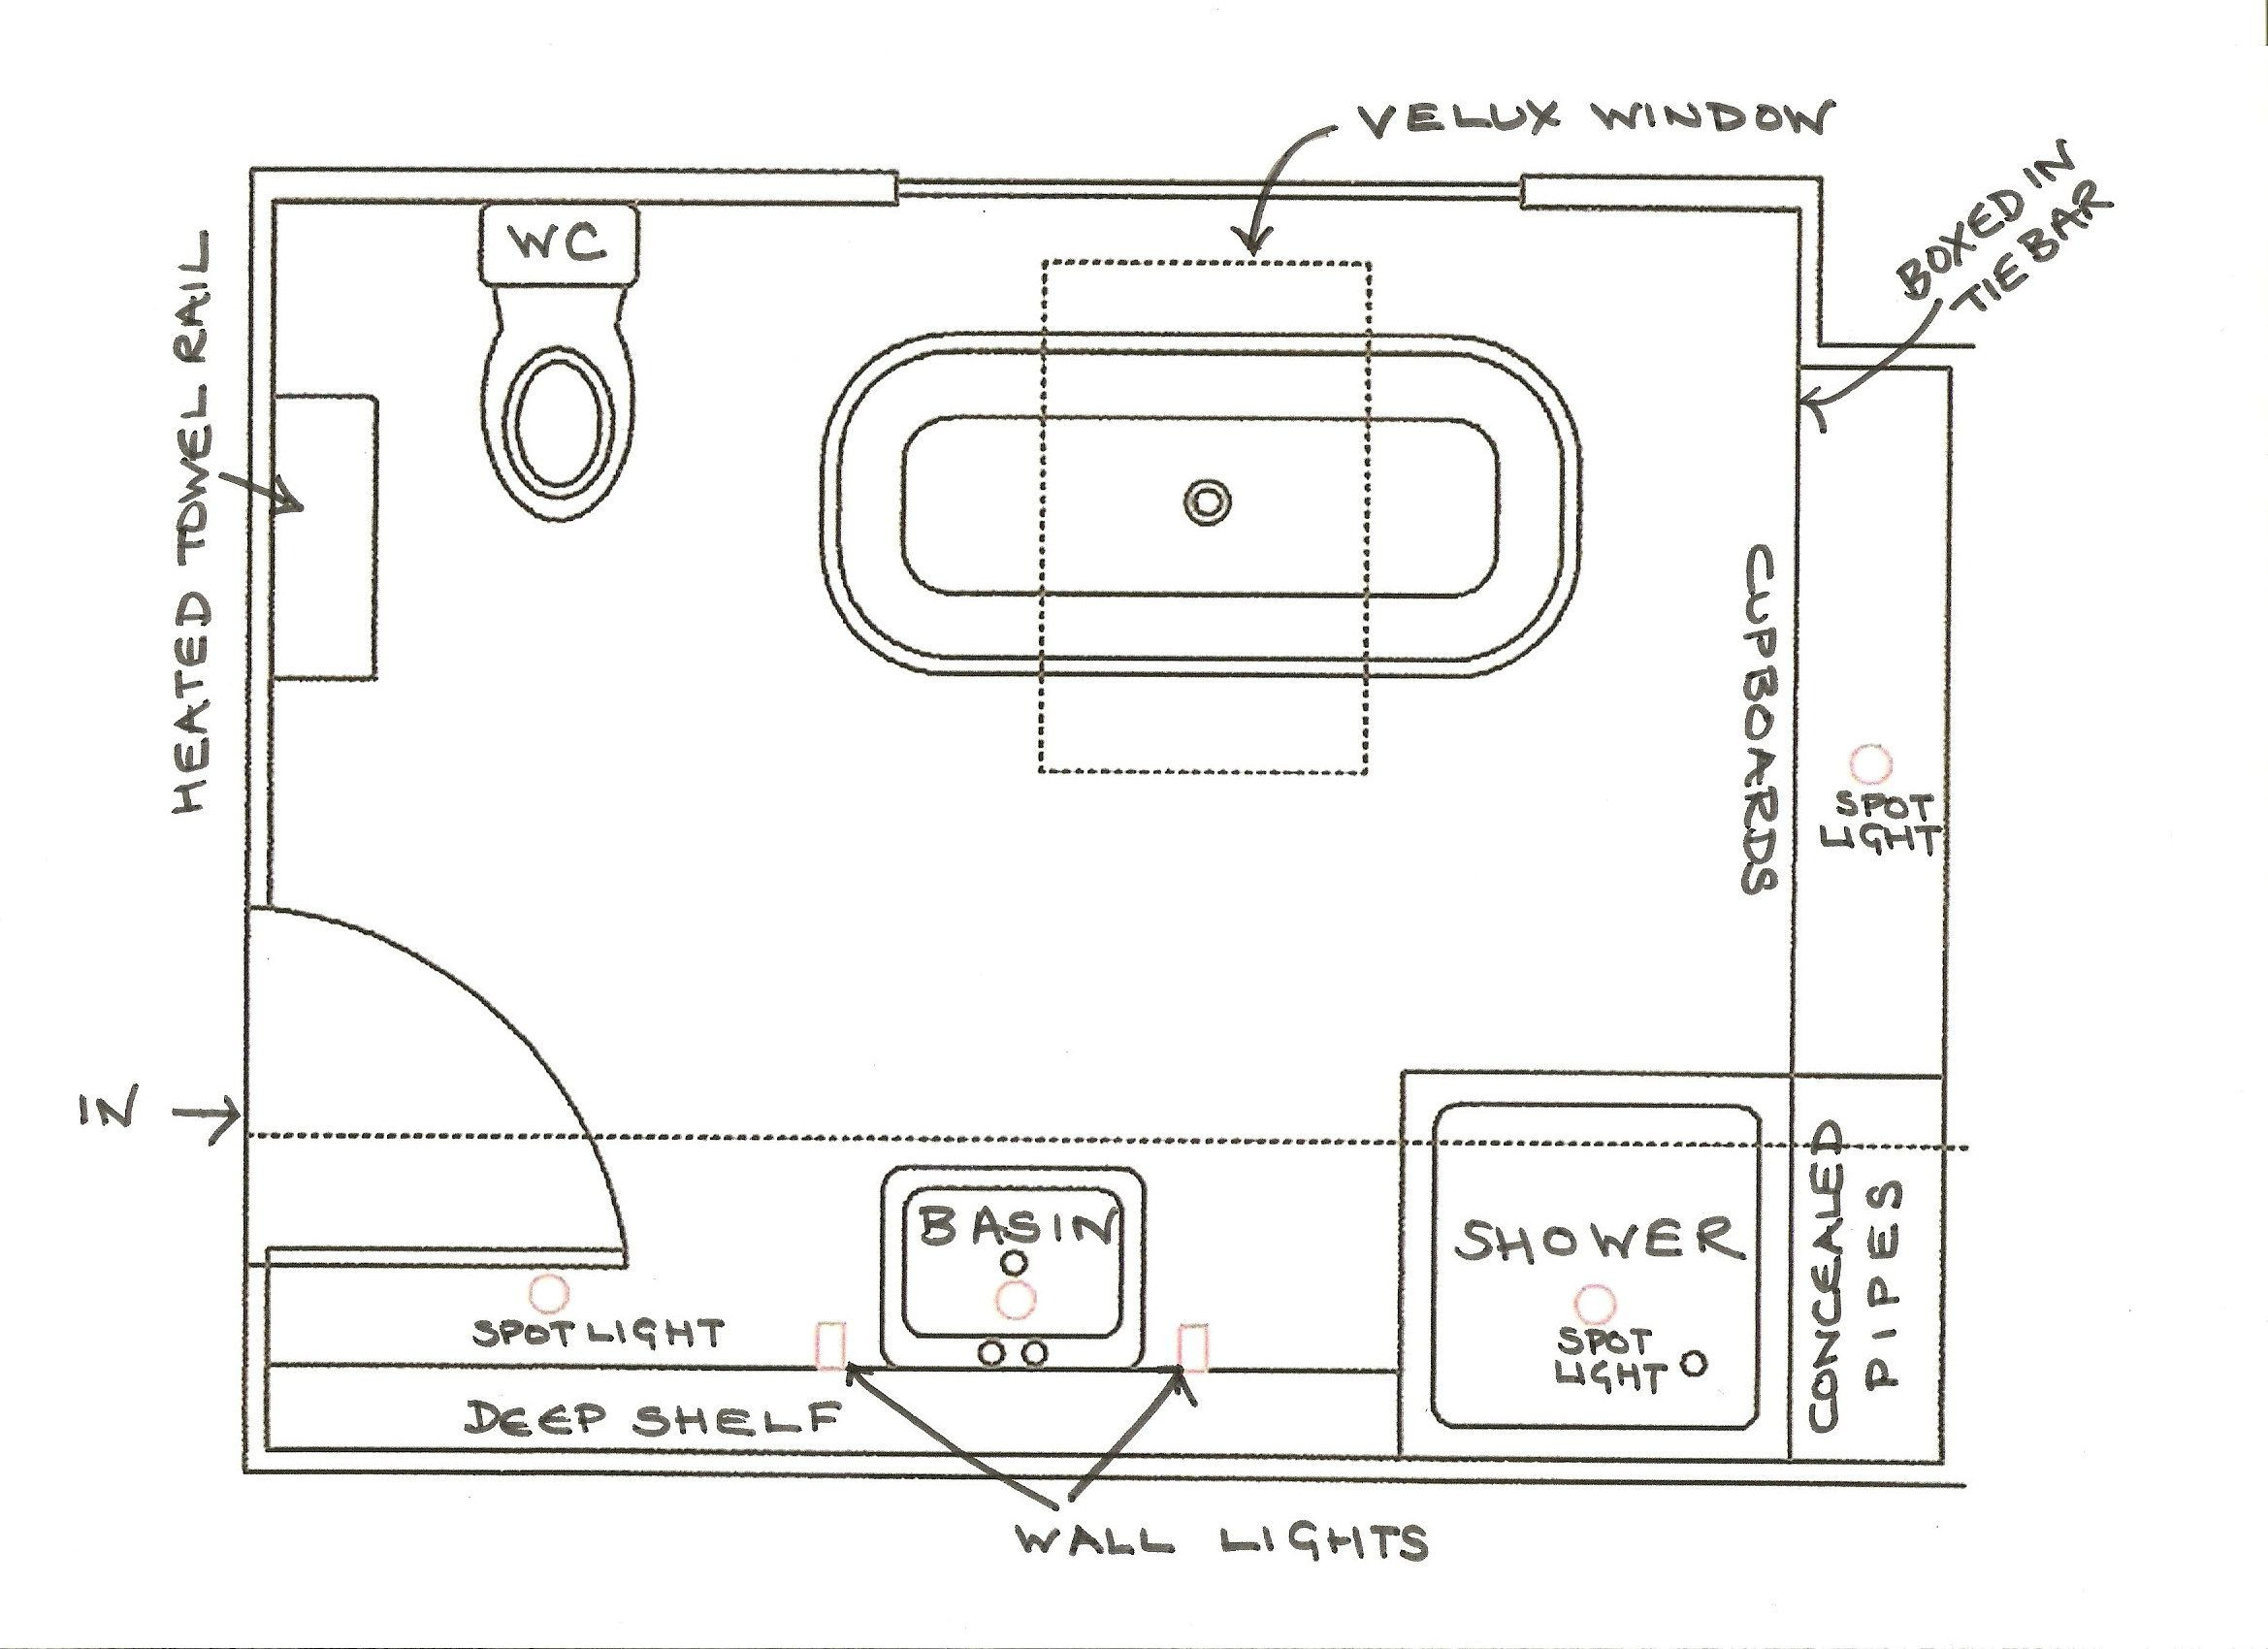 Best ideas about Small Bathroom Dimensions . Save or Pin 6 x 12 bathroom floor plans Now.